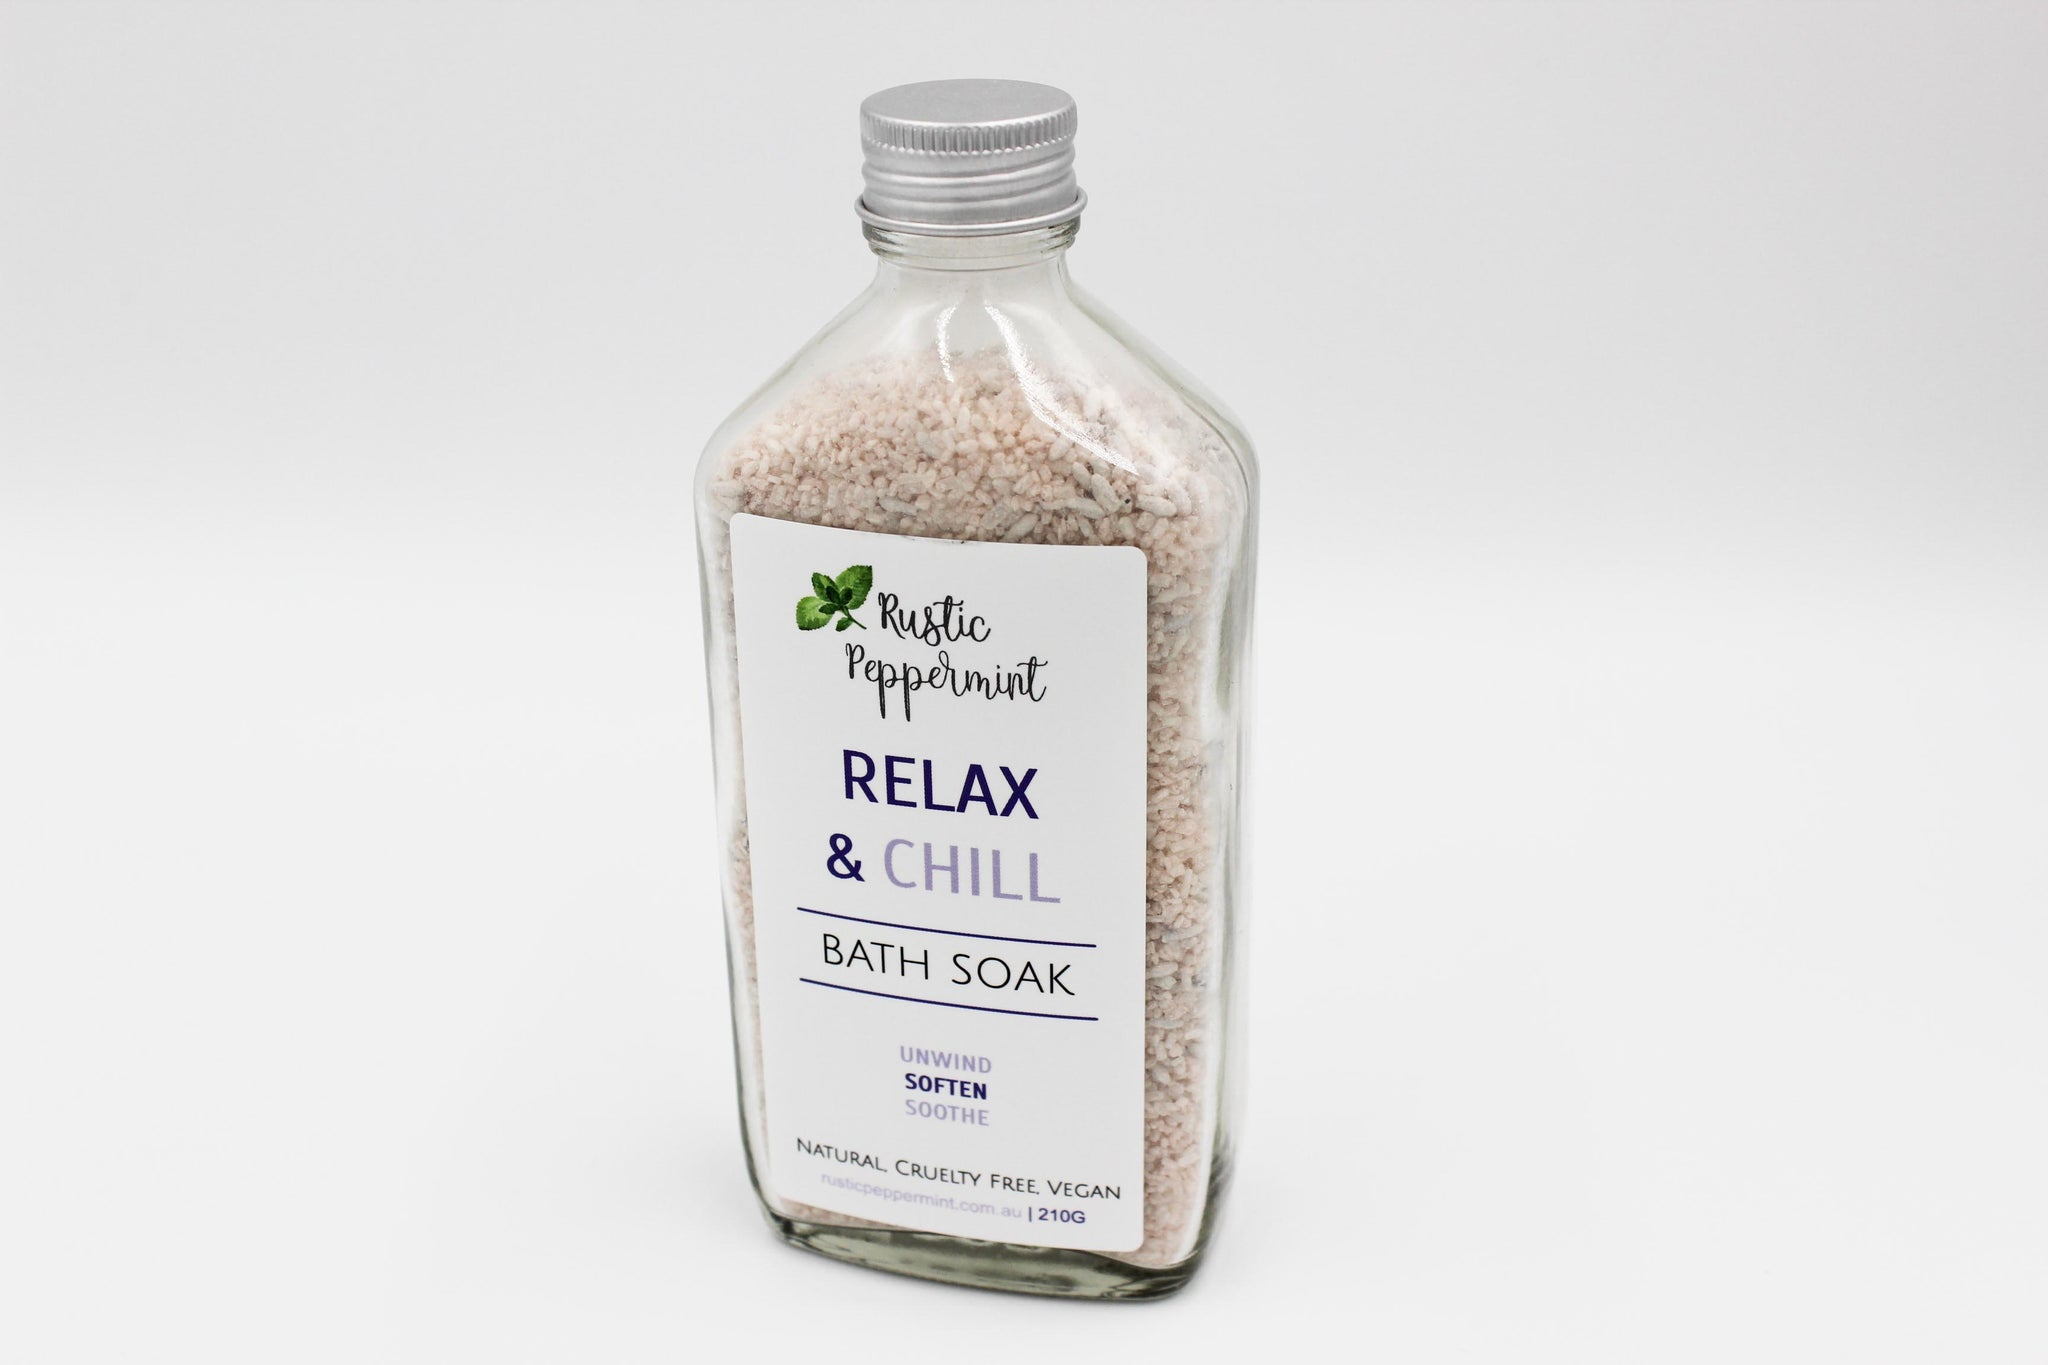 Relax and Chill Bath Soak